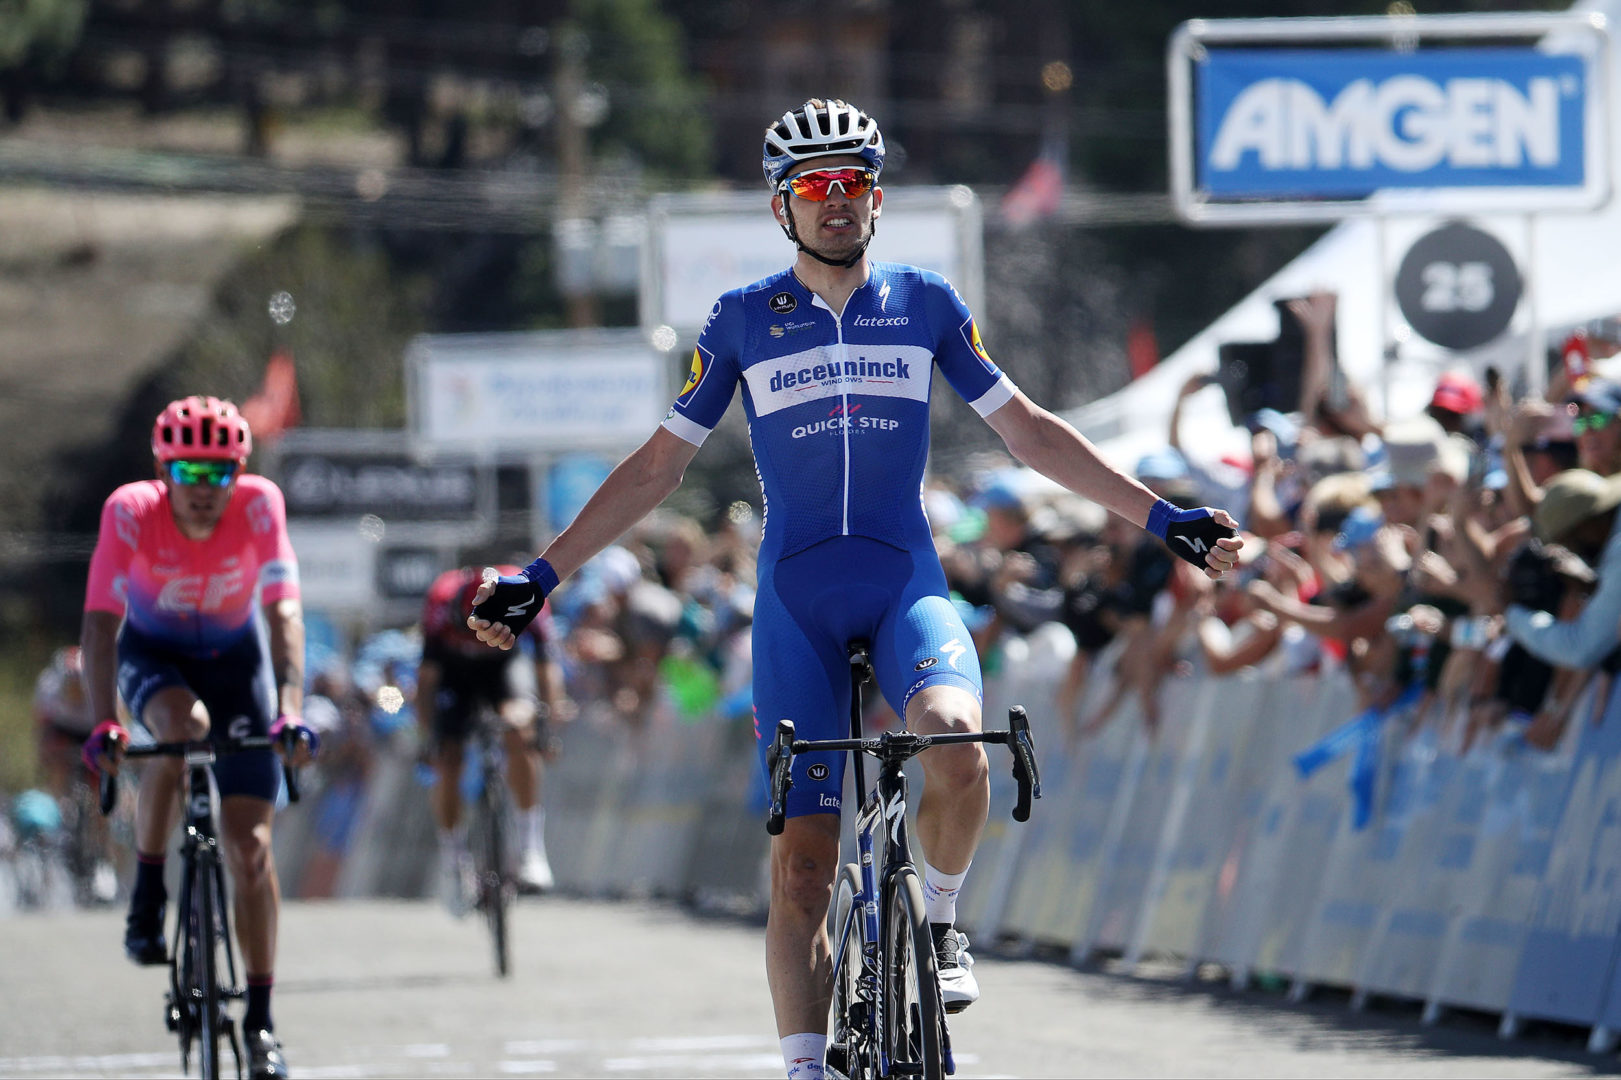 Asgreen ganó la segunda etapa del Tour de California. (Photo by Chris Graythen/Getty Images)